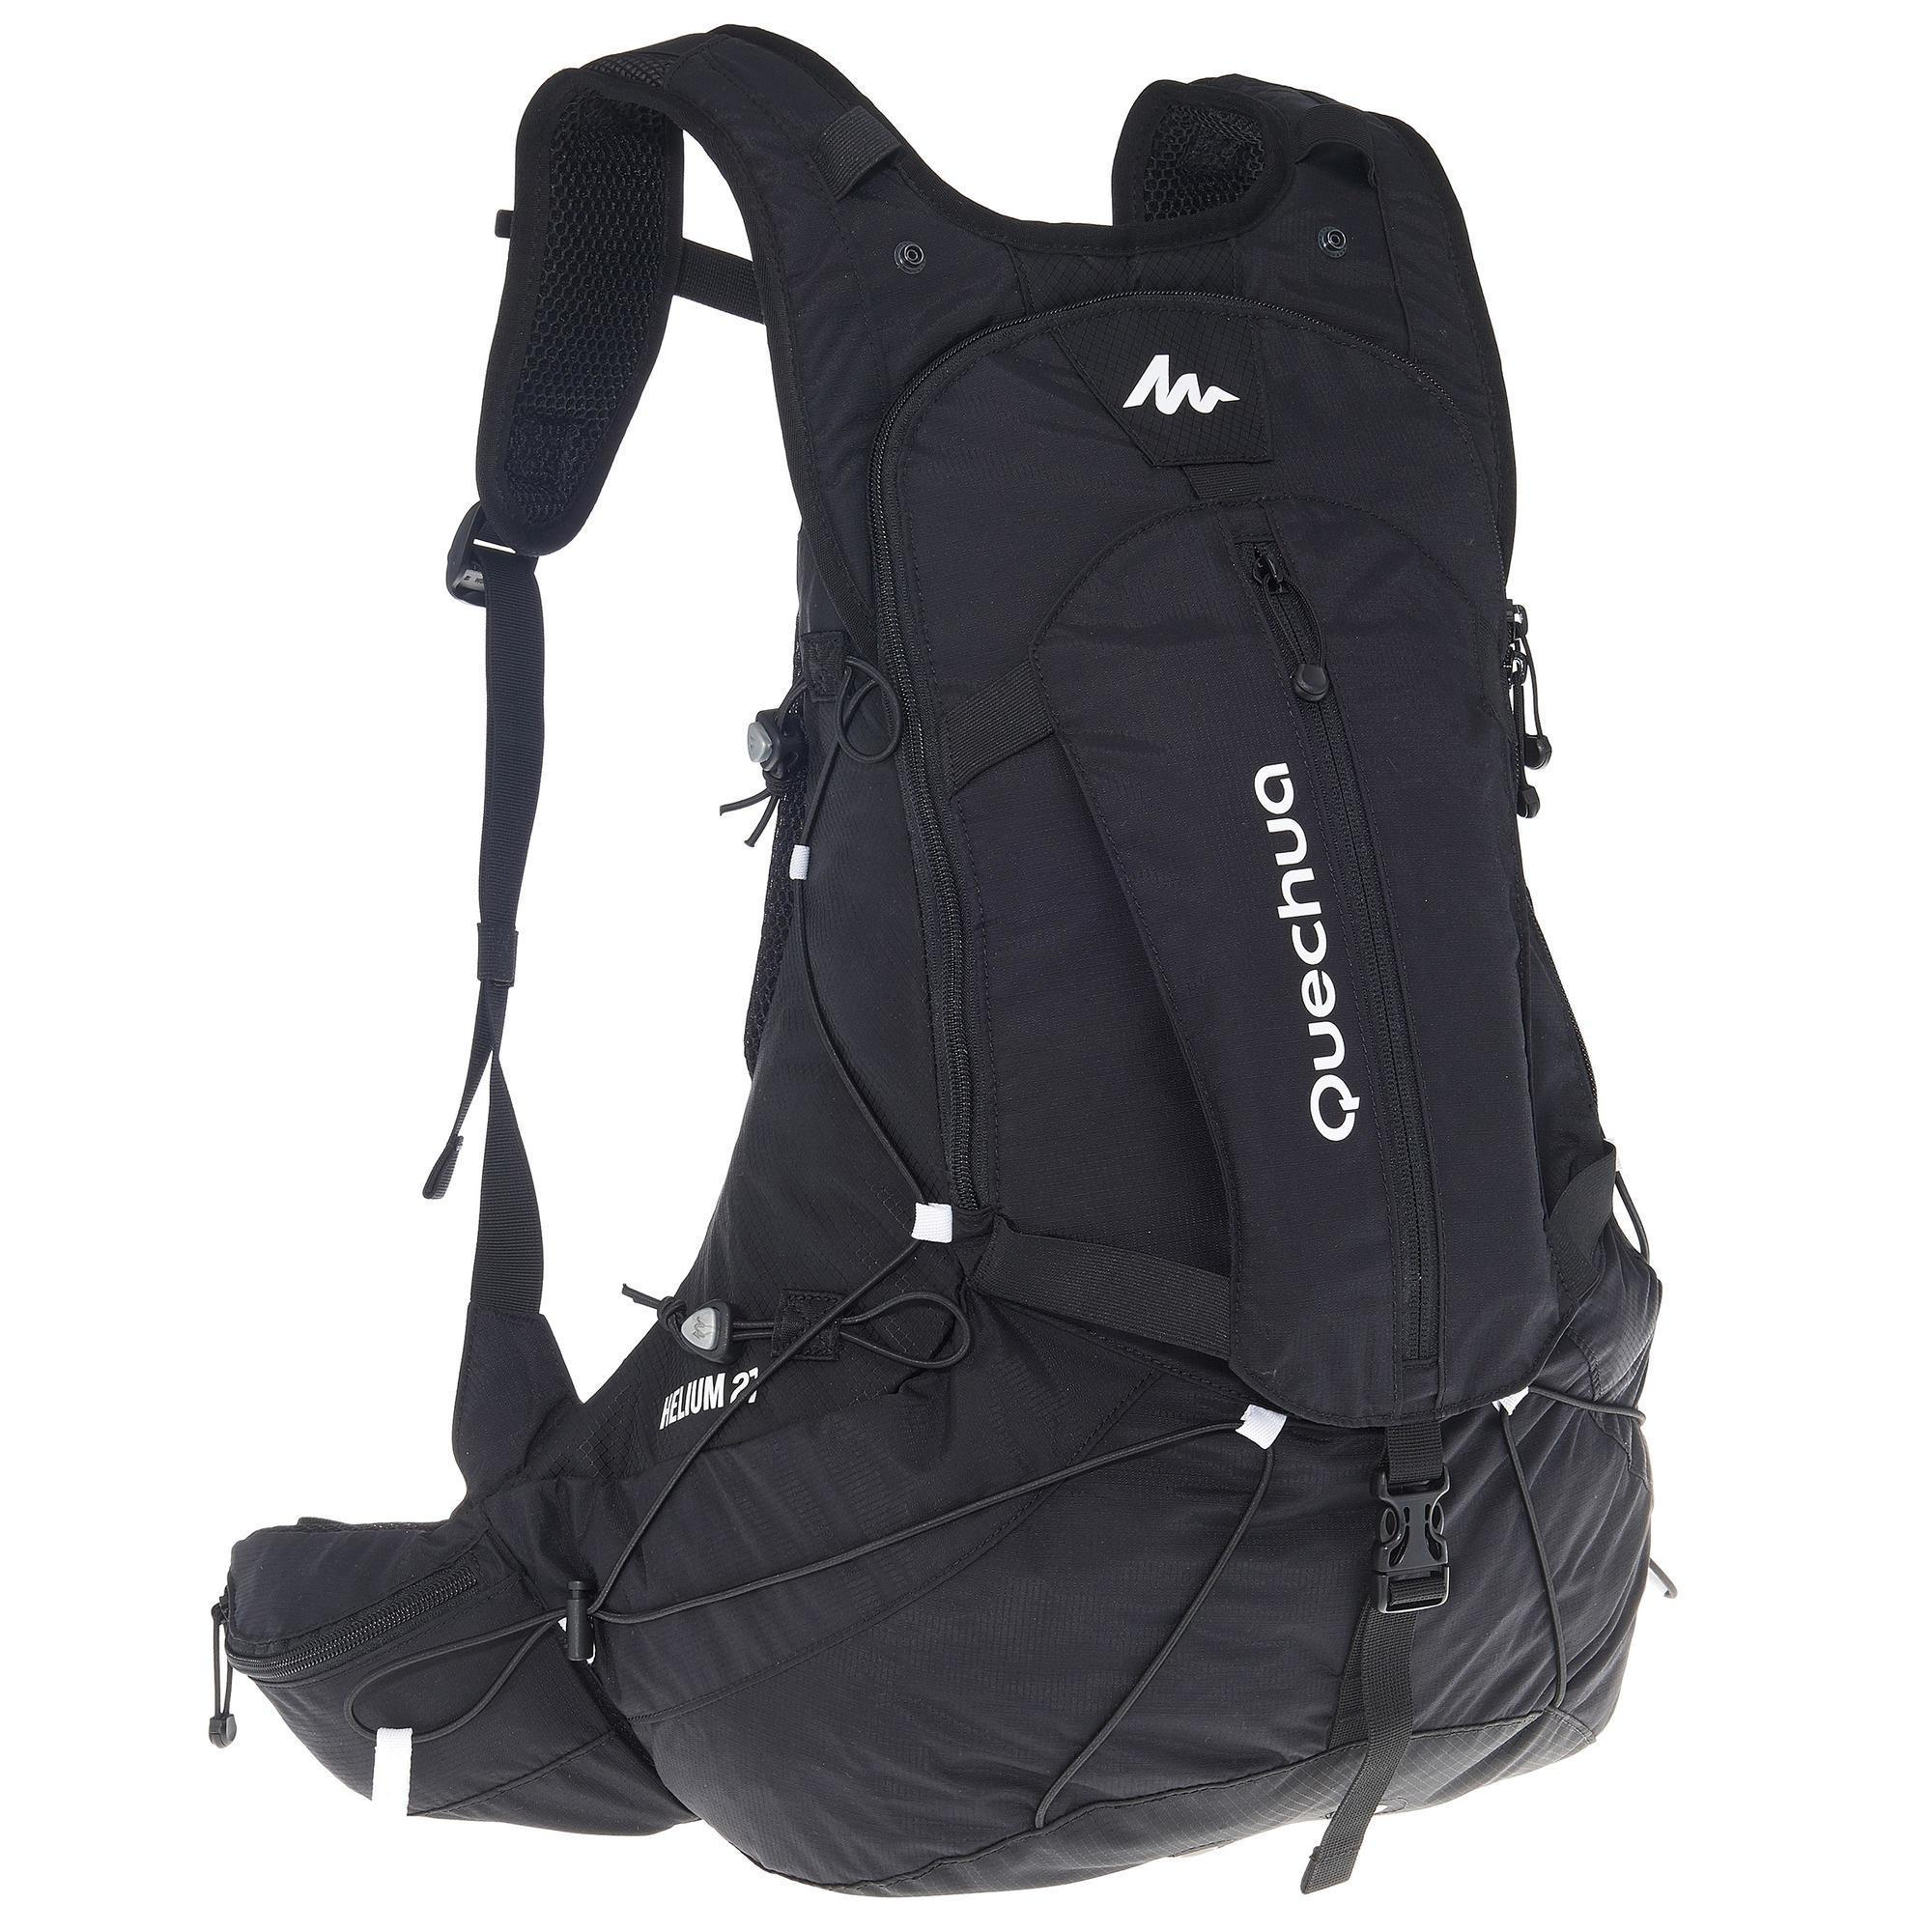 bc072ac4a9 Quechua Nh500 30l Hiking Backpack